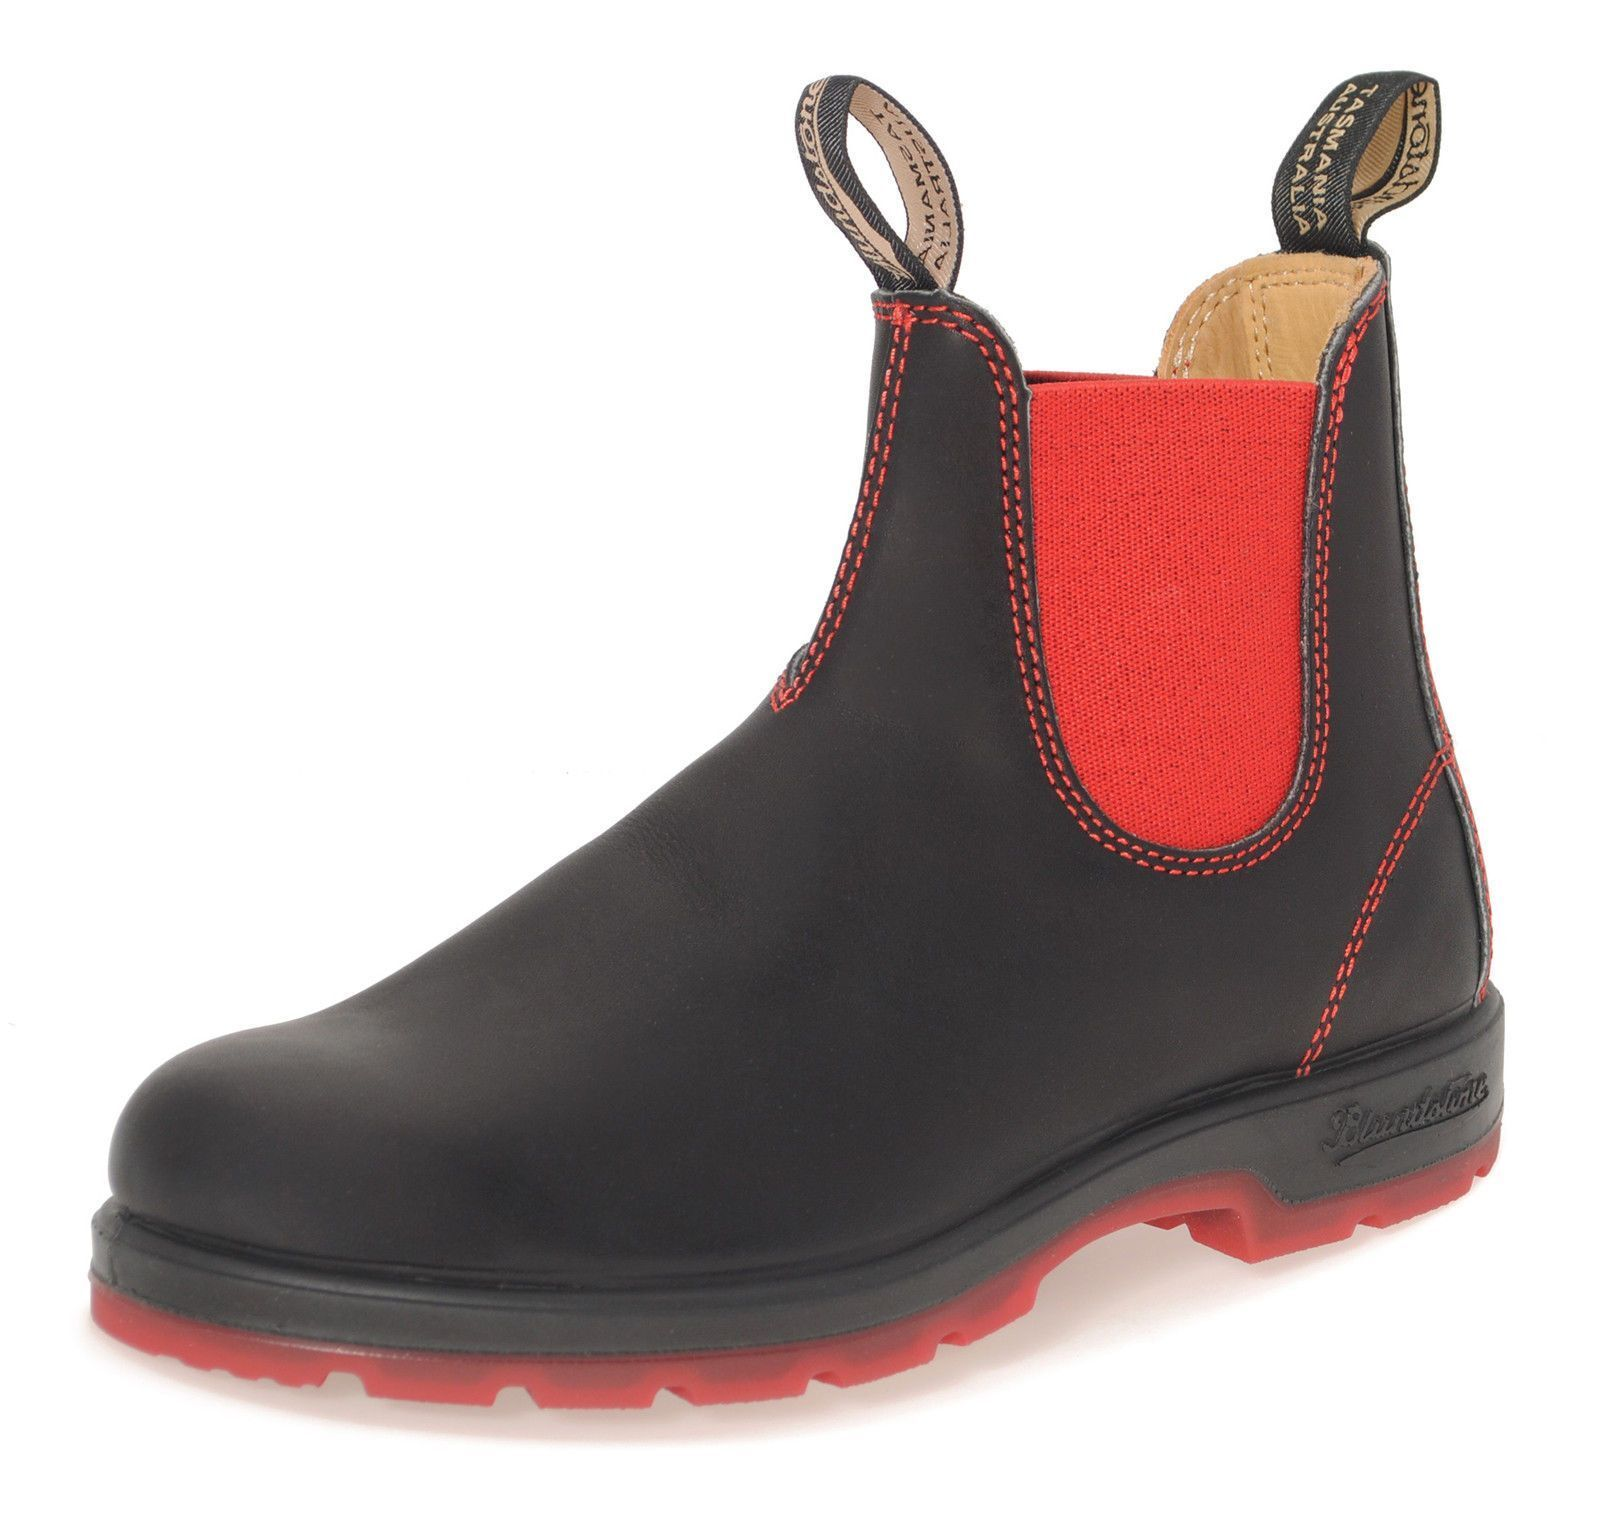 bluendstone 1316 Rare Heritage Black Red Leather Classic Chelsea Boots Australia